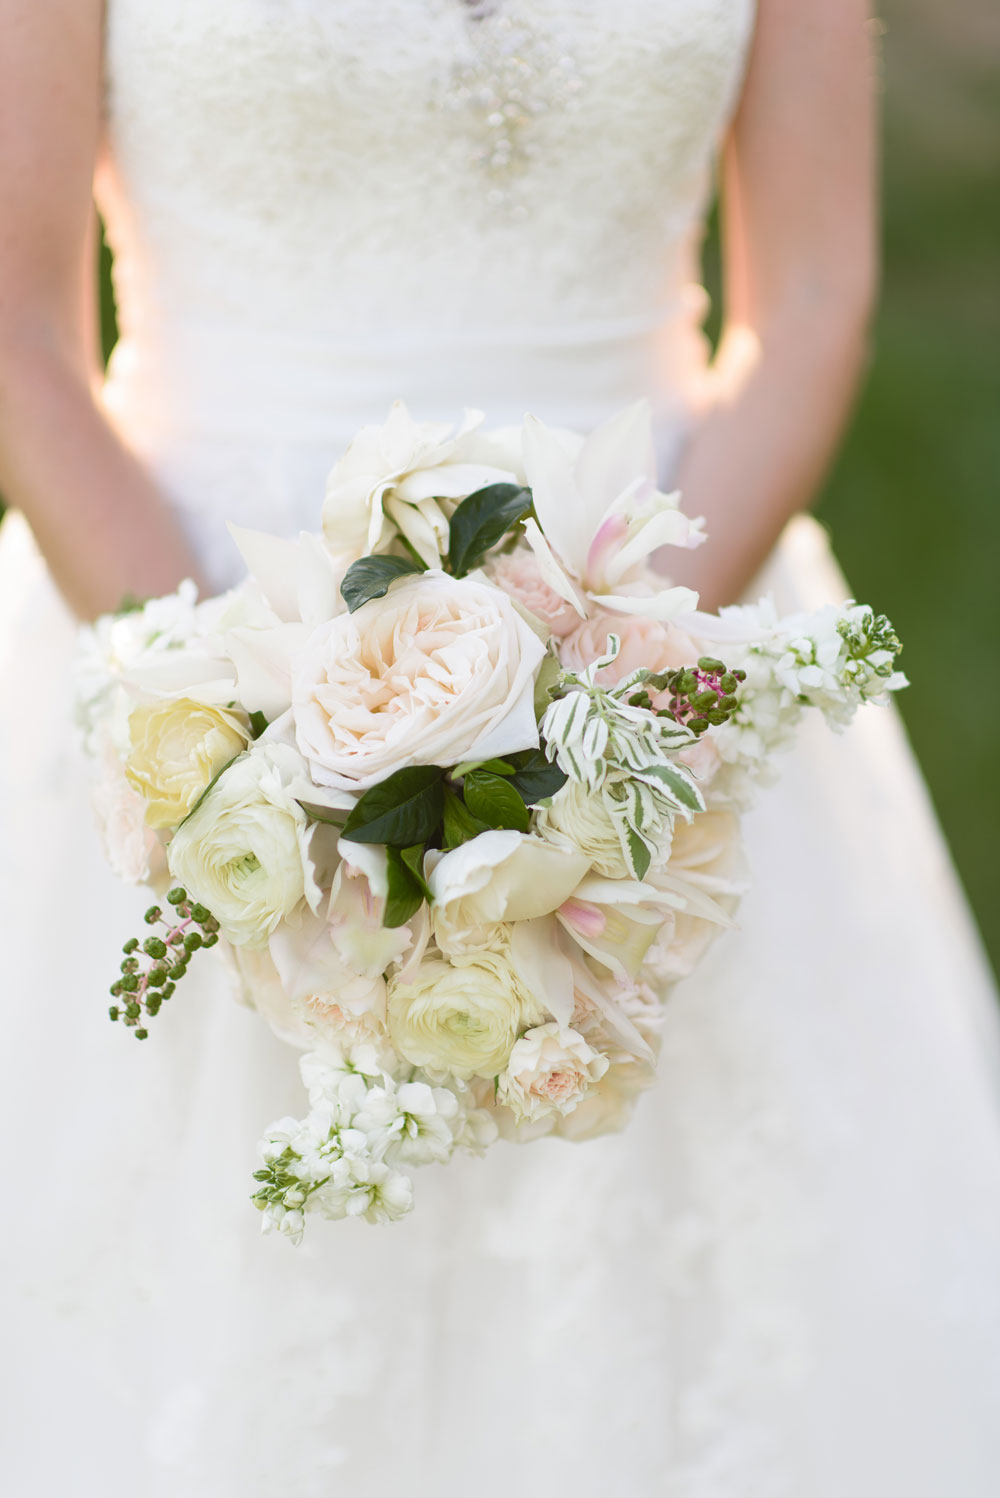 Bridal bouquet with blush roses : douglaslevyphotography.com